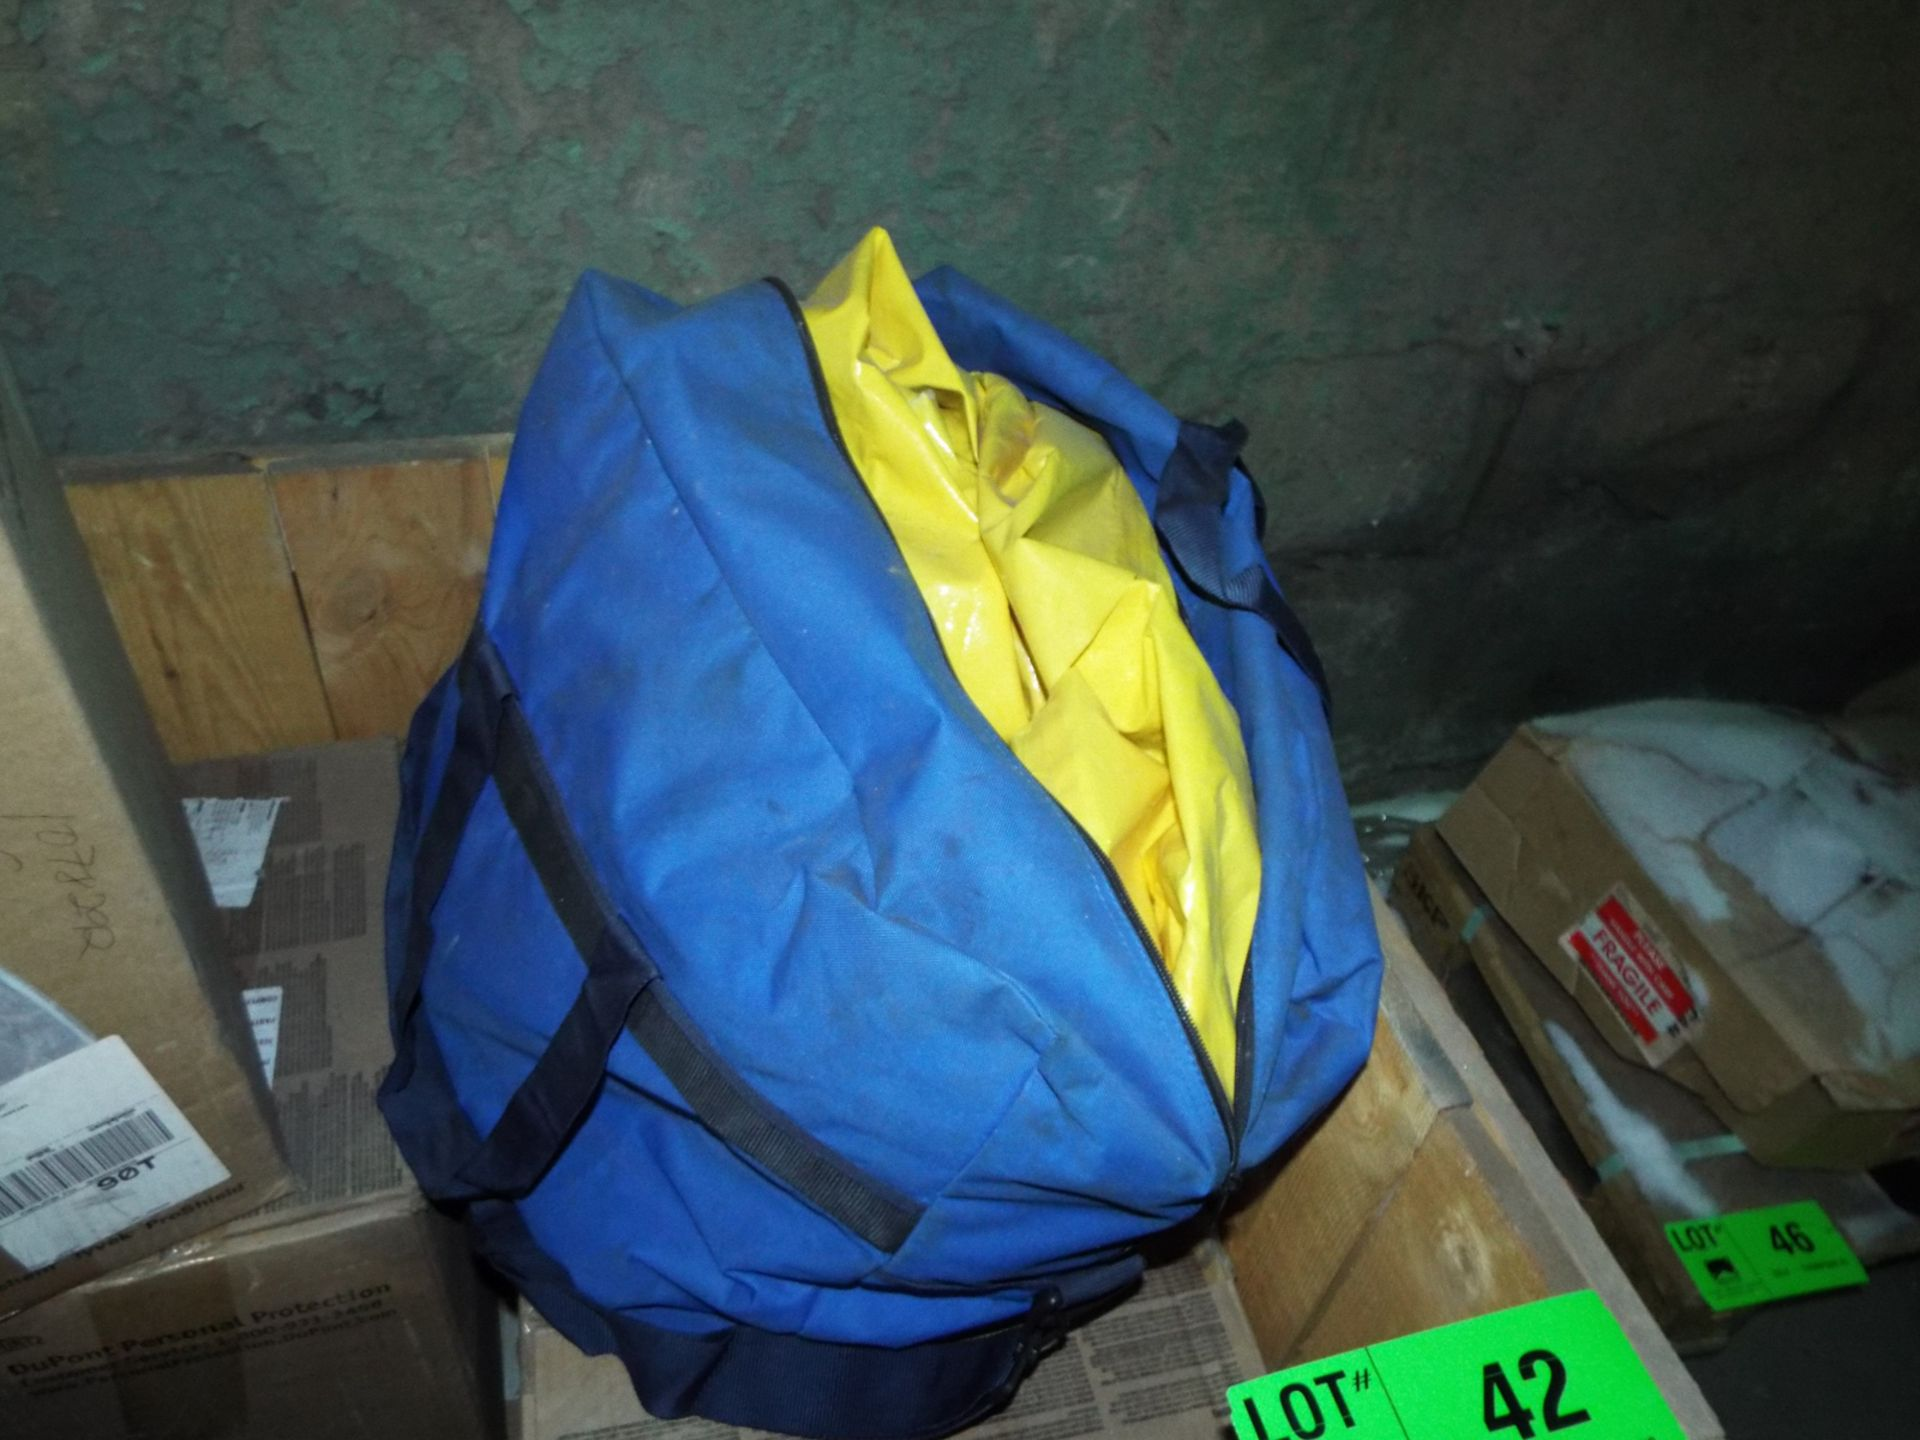 Lot 42 - LOT/ CONTENTS OF CRATE - (6) DUPONT TYCHEM PPE ENCAPSULATED SUITS, (1) 1900 PSI PRESSURE WASHER, (1)